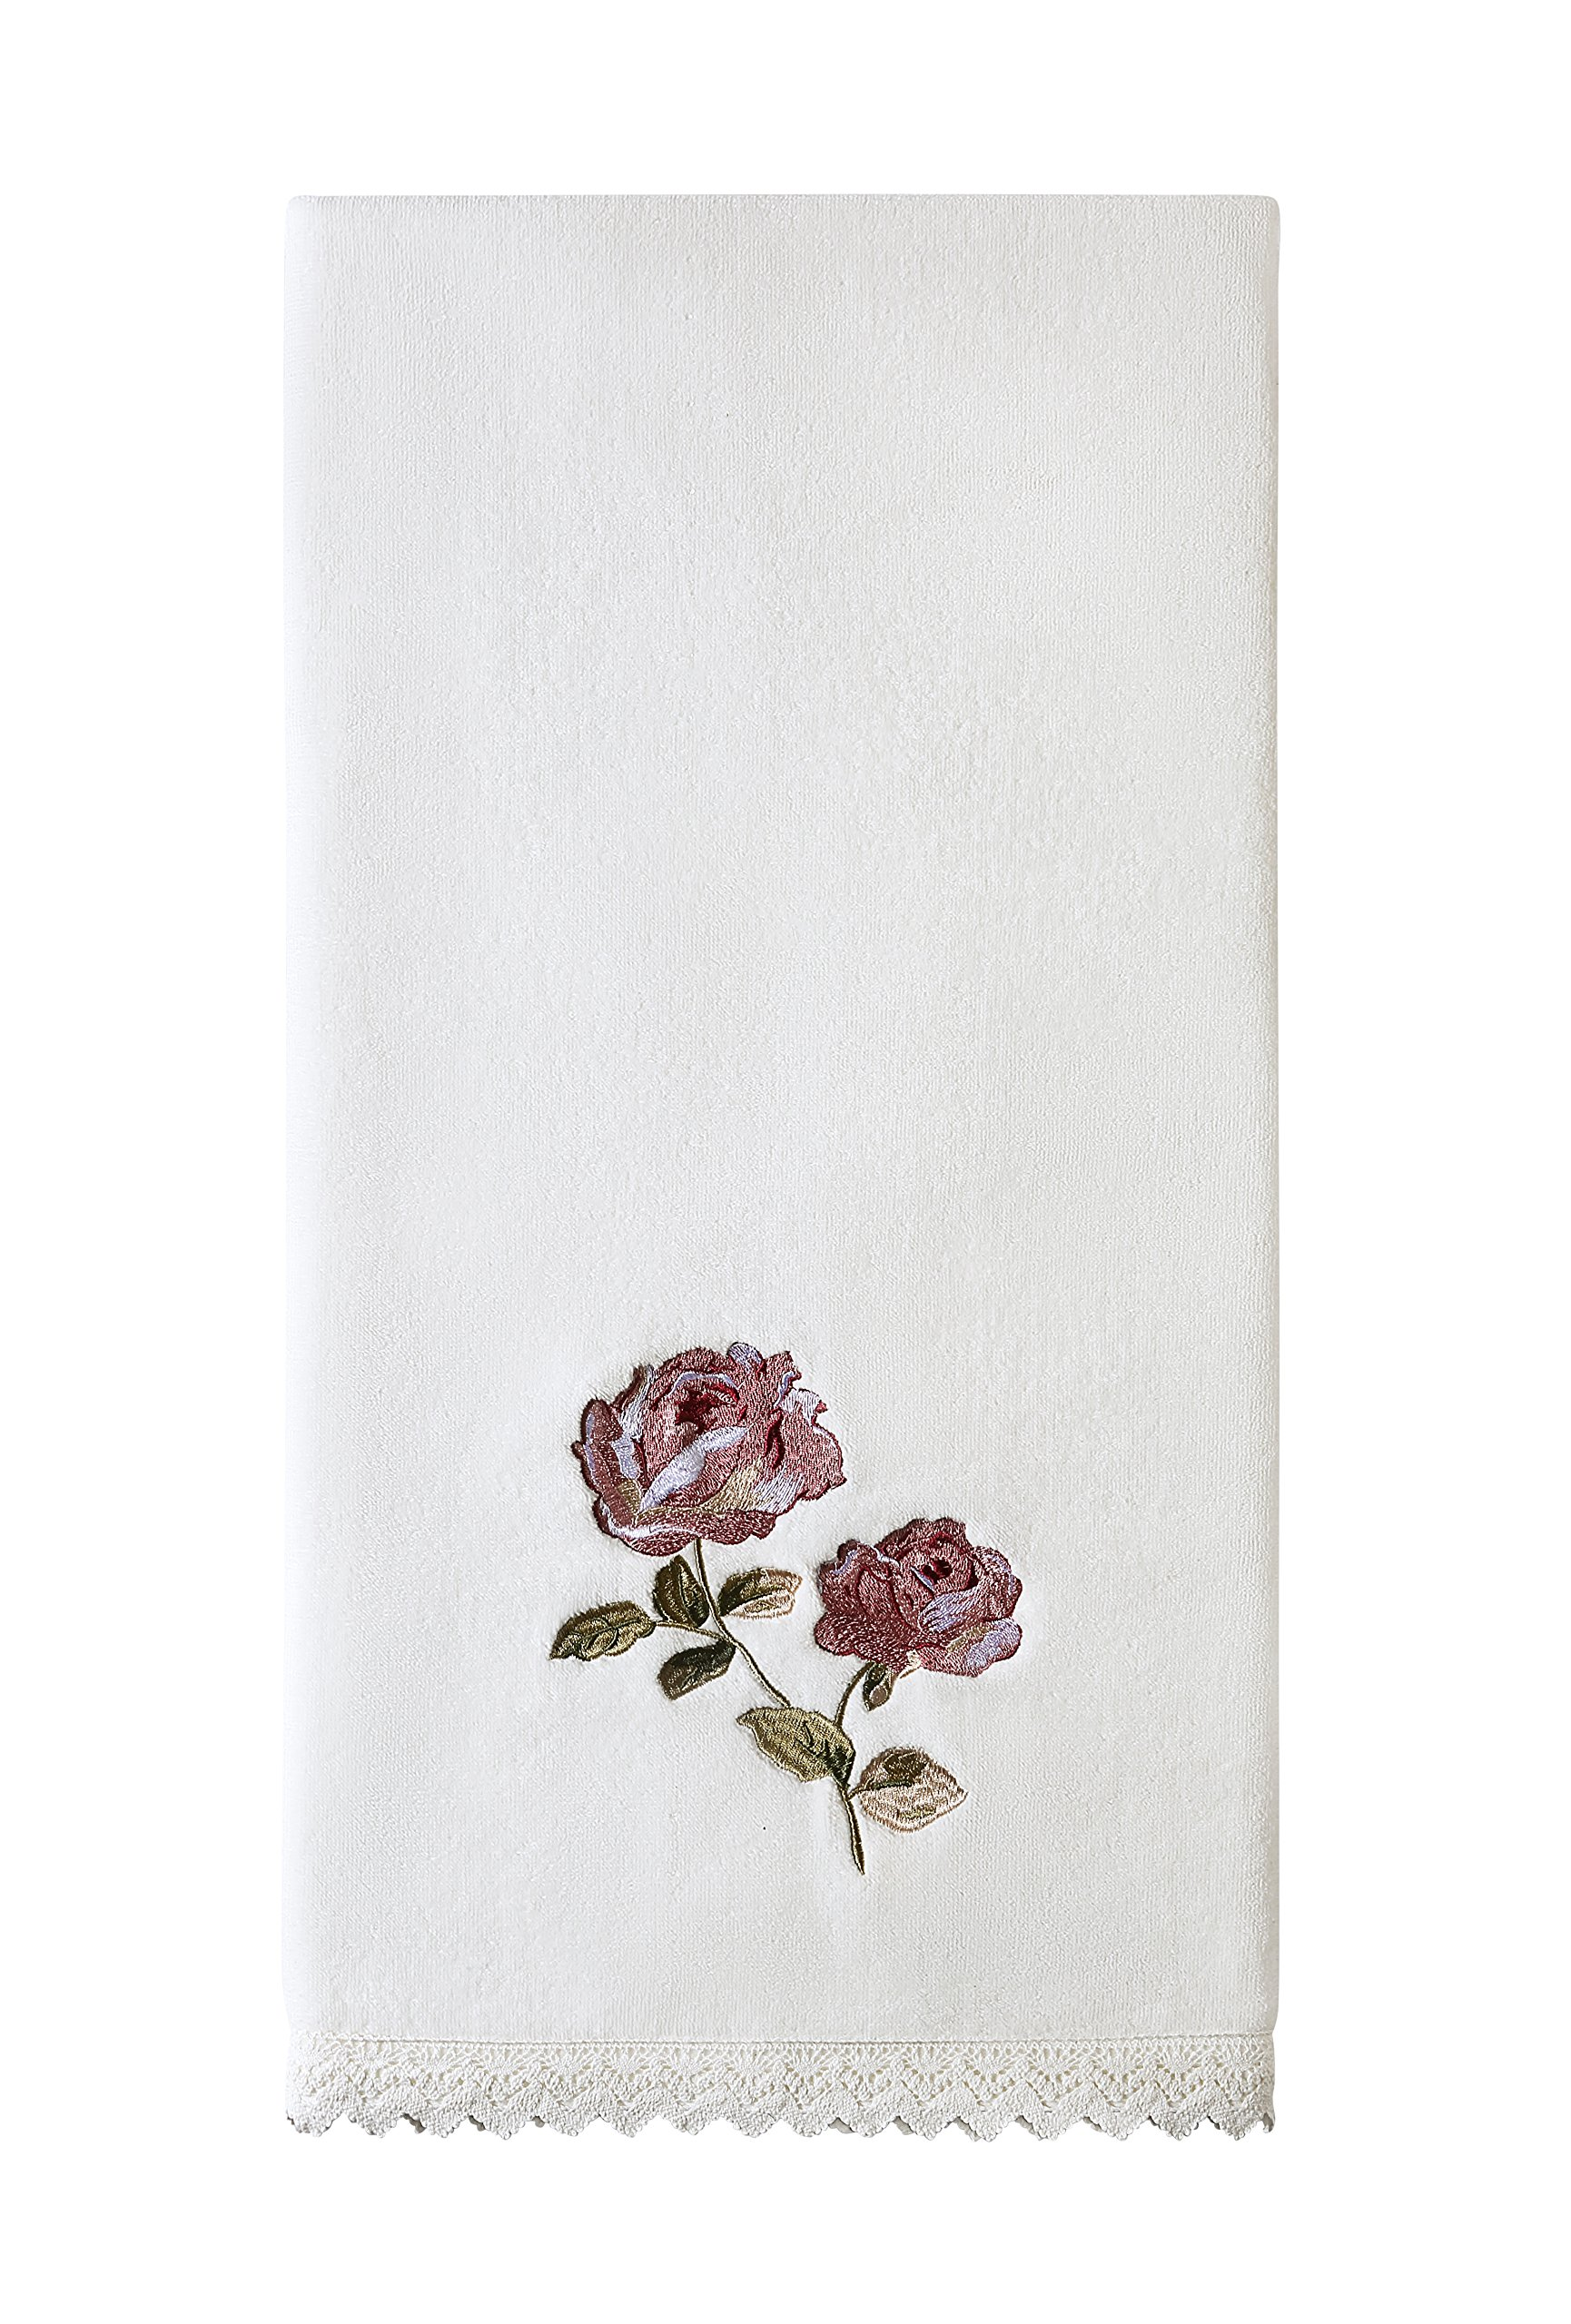 Five Queens Court Rosalind Country Chic Floral Embroidered Crochet Trim Bath Towel, Pink Rose by Five Queens Court (Image #1)